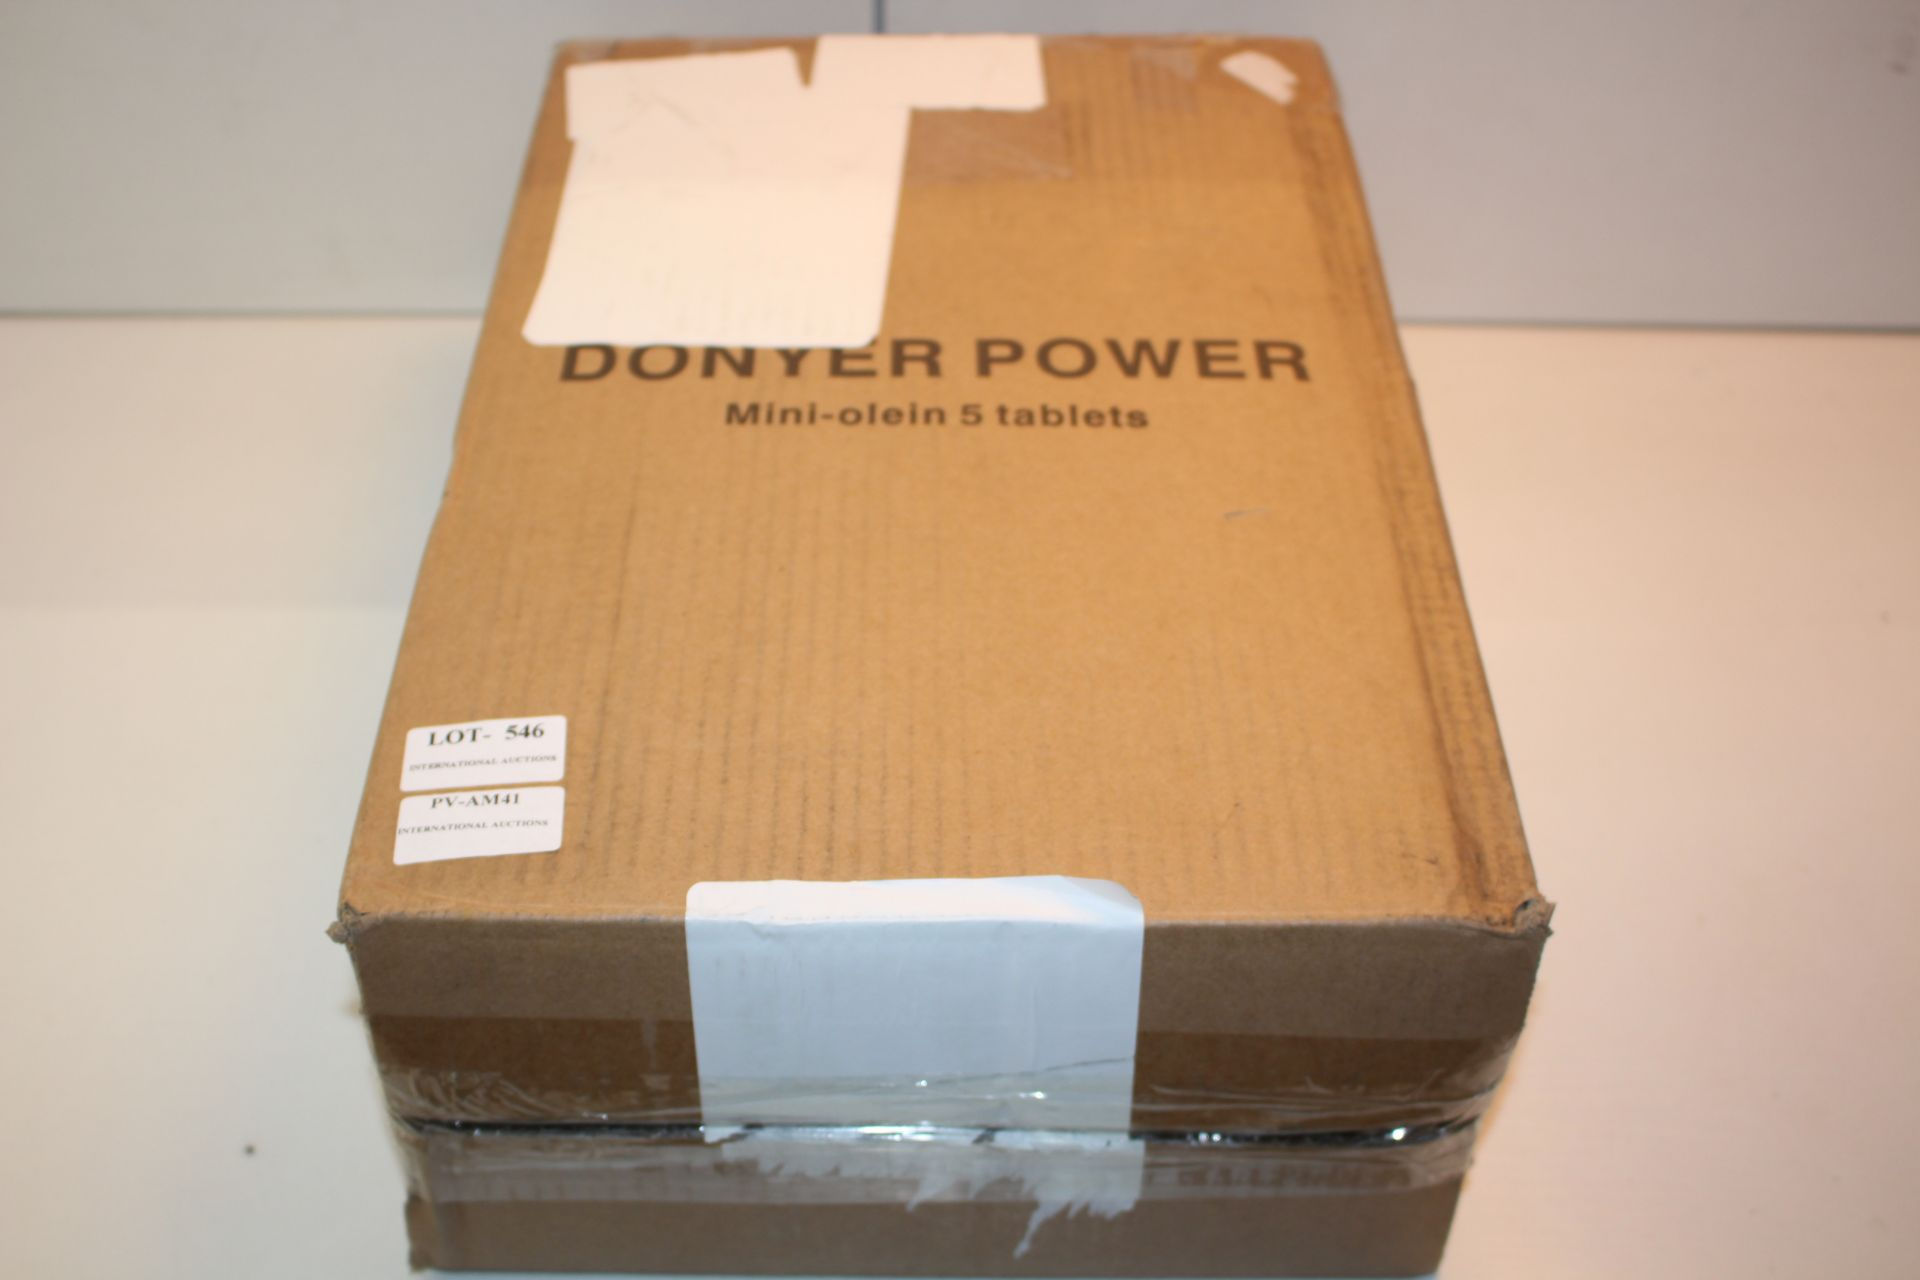 BOXED DONYER POWER OIL FILLED RADIATORCondition ReportAppraisal Available on Request- All Items